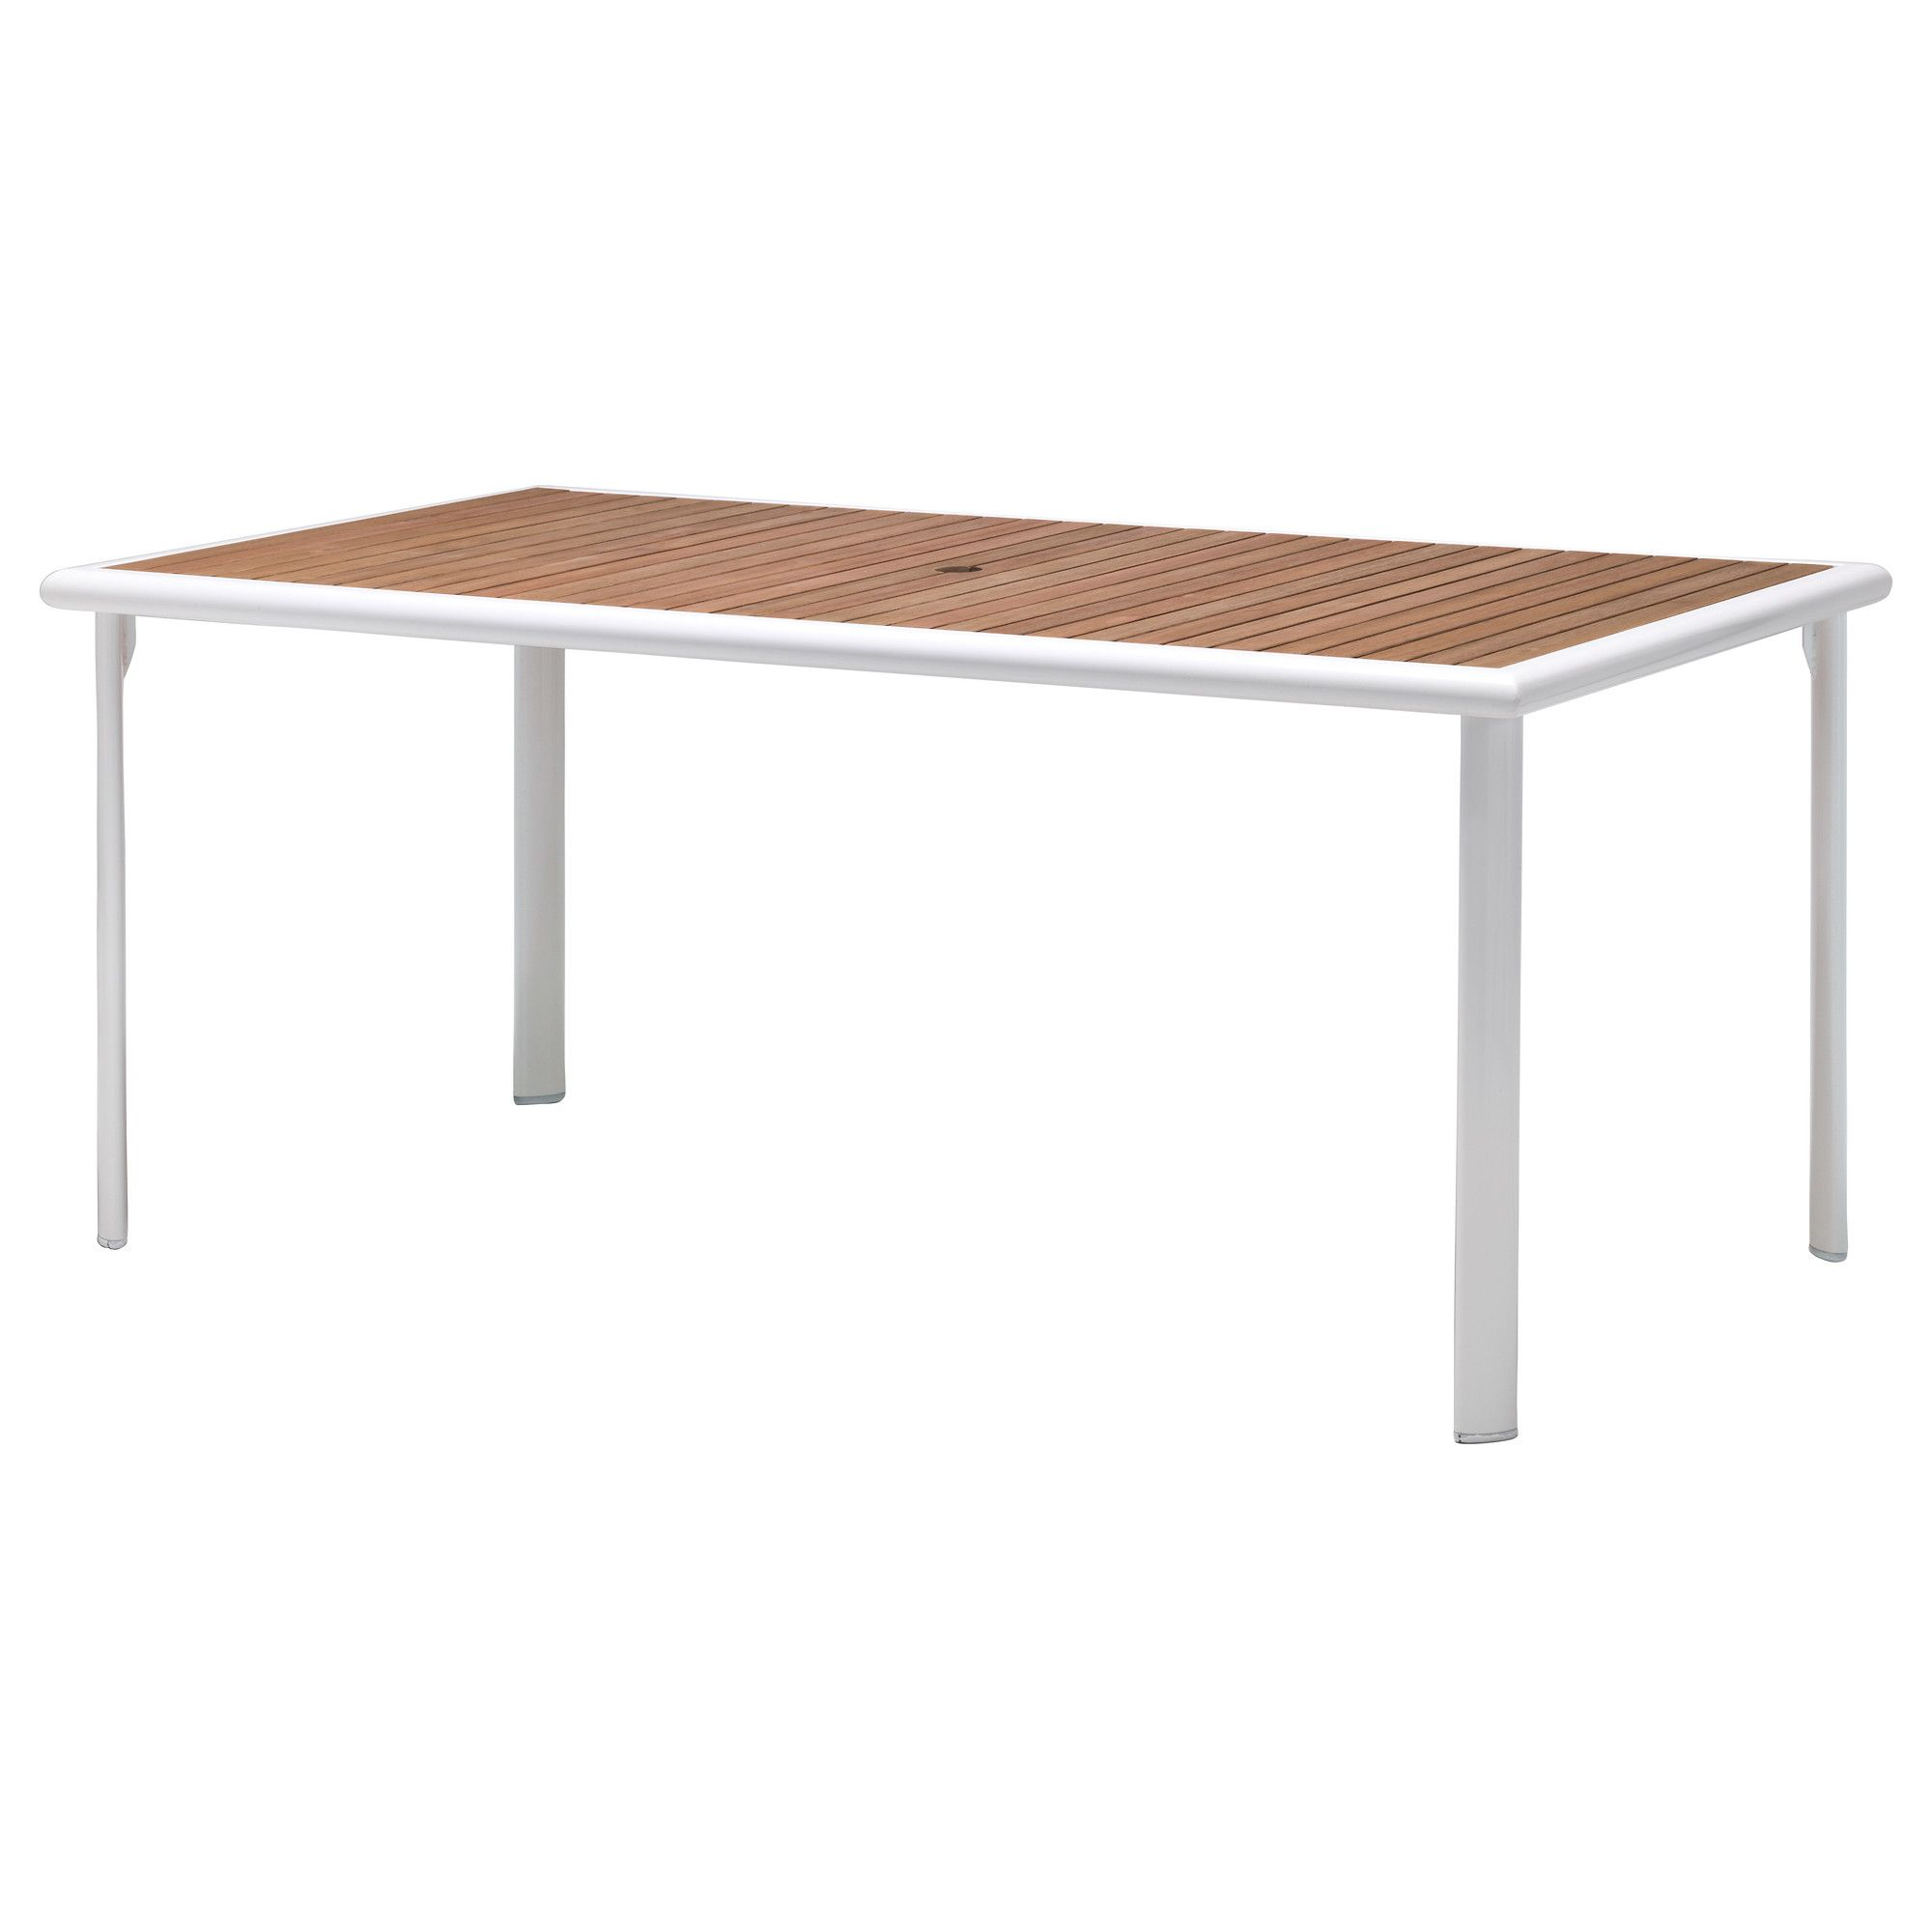 Ikea Gartentisch Hasseloen For The Backyard HasselÖn Table Ikea 169 For The